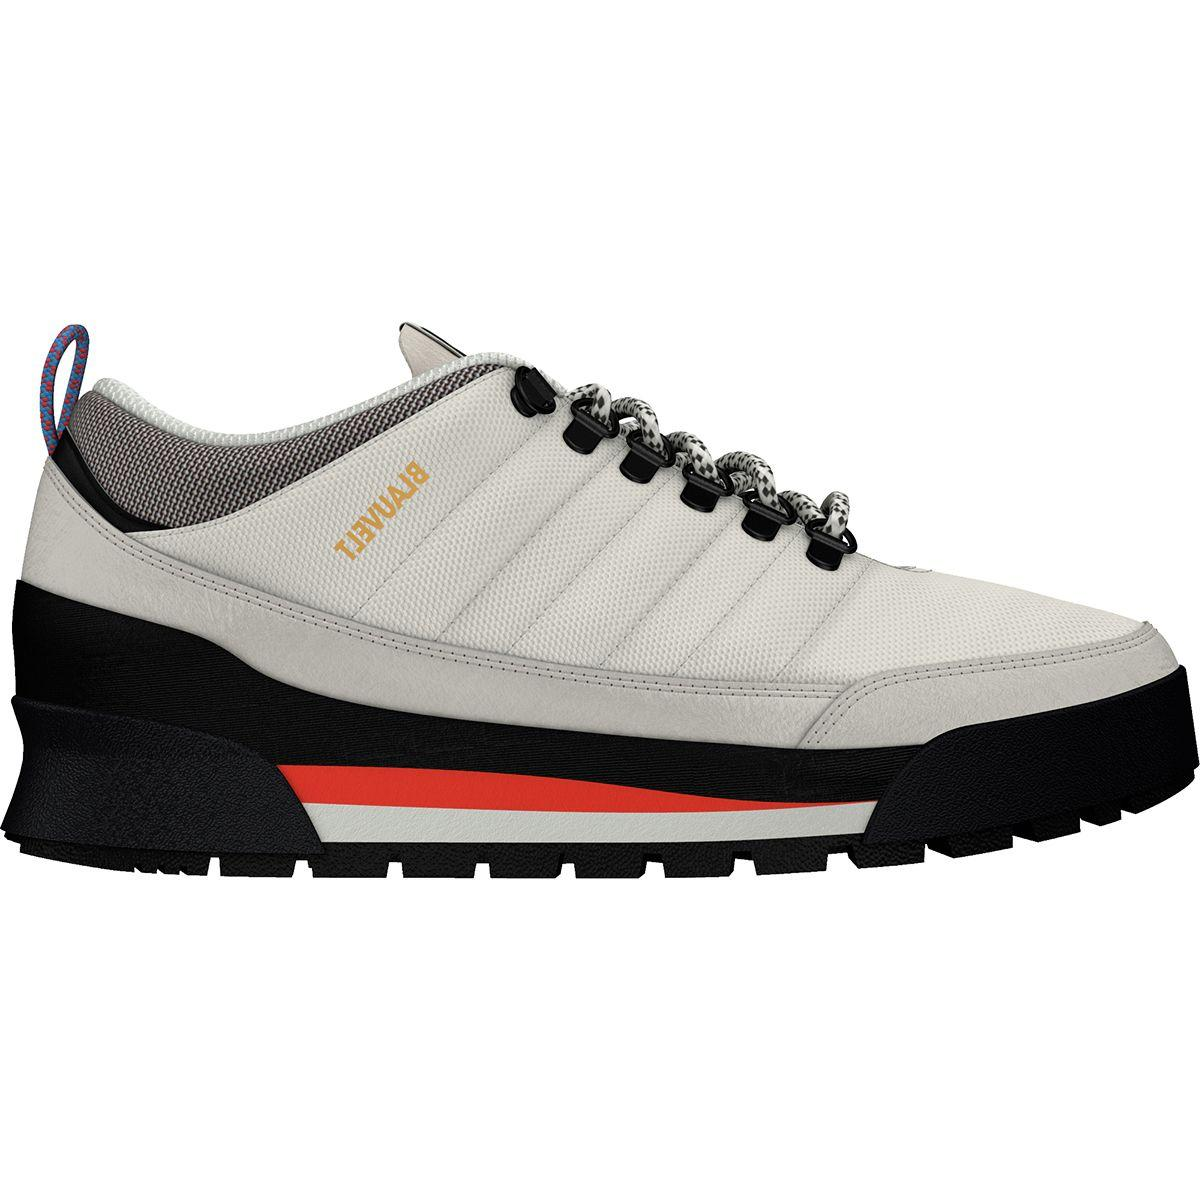 58ad346e0d6bb Lyst - adidas Jake 2.0 Low Boot in Black for Men